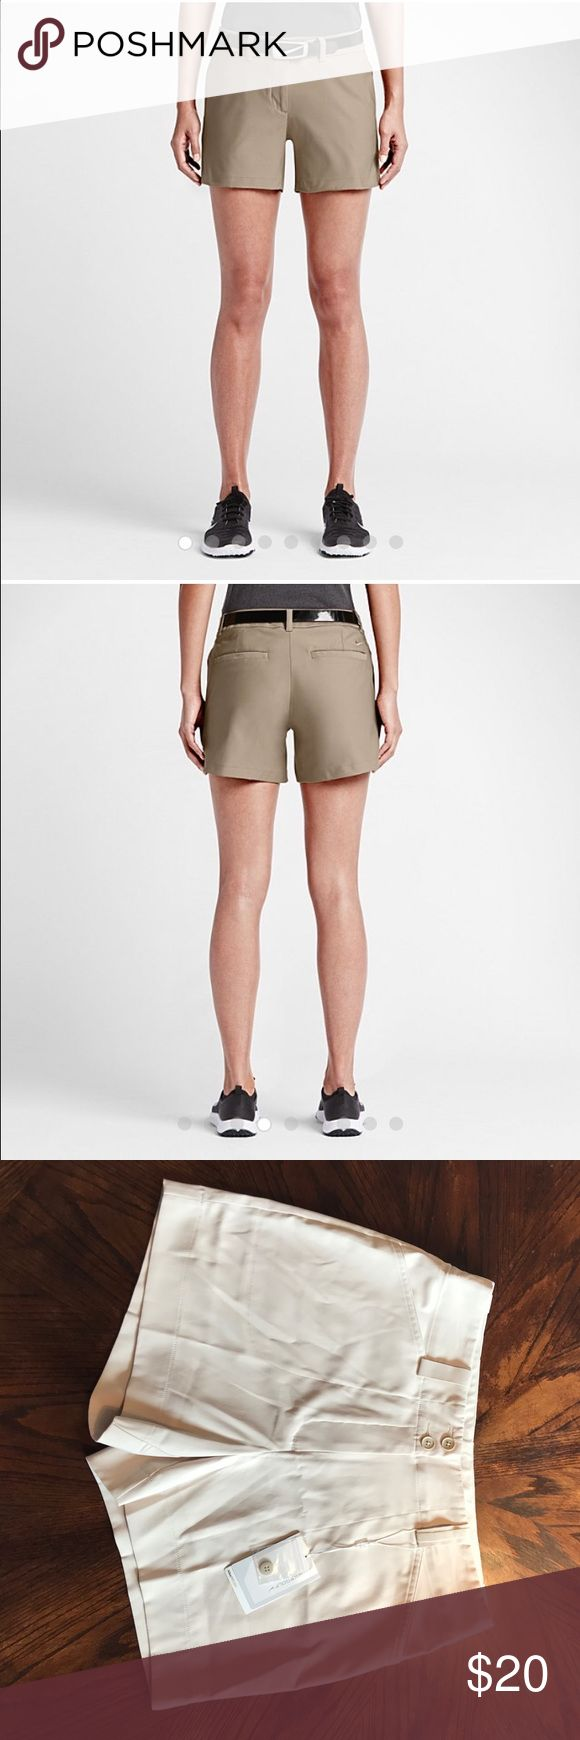 "Nike women's gold shorts NWT size 8 NWT! Nike Dry-fit golf shorts ""tournament"" style.  Flat front, light khaki color size 8 :) Nike Shorts"